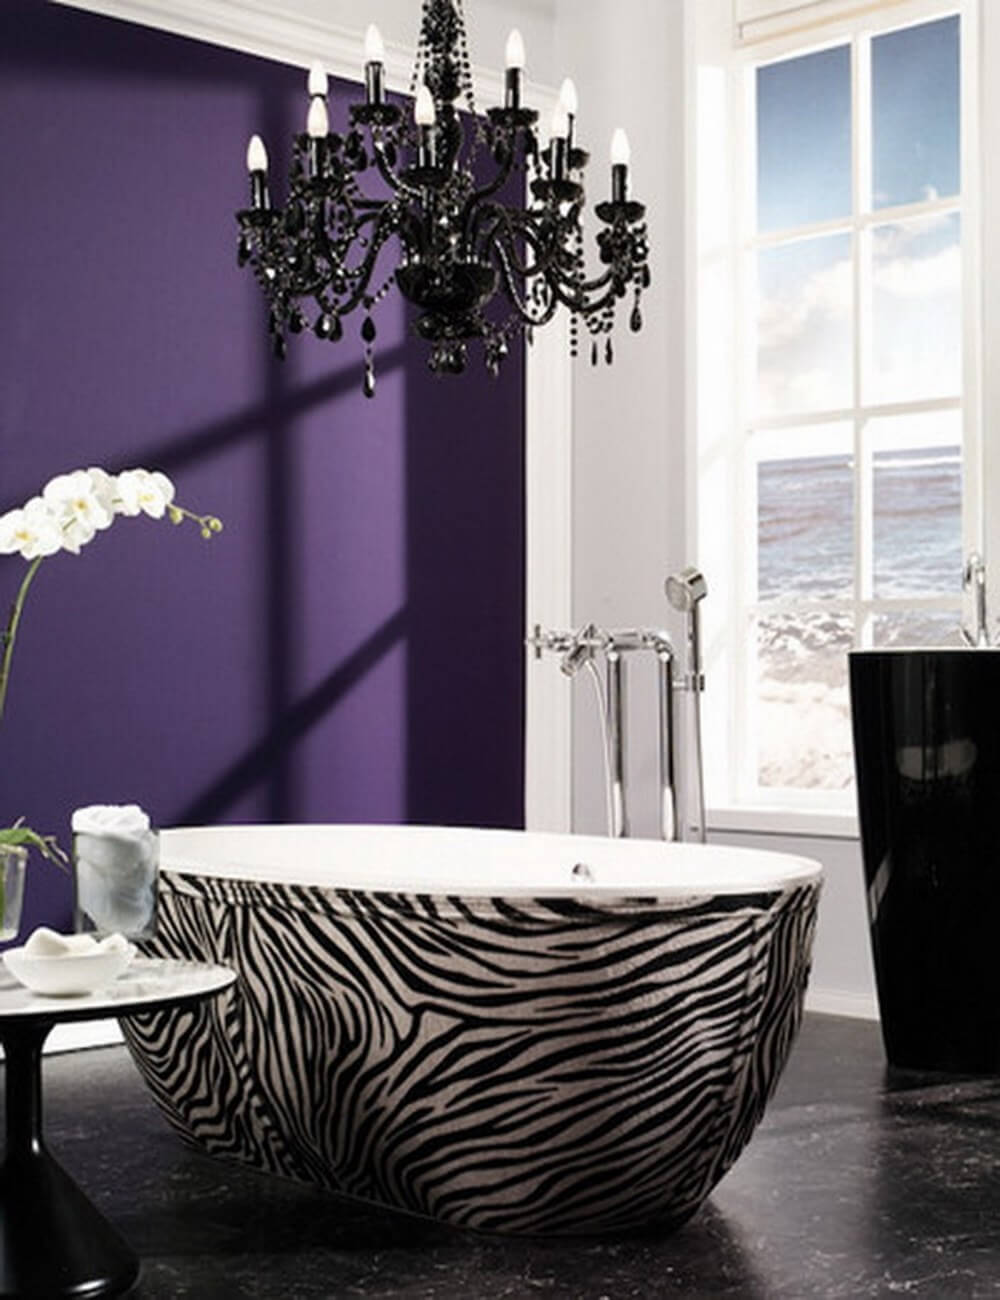 Bathroom with Zebra print accents